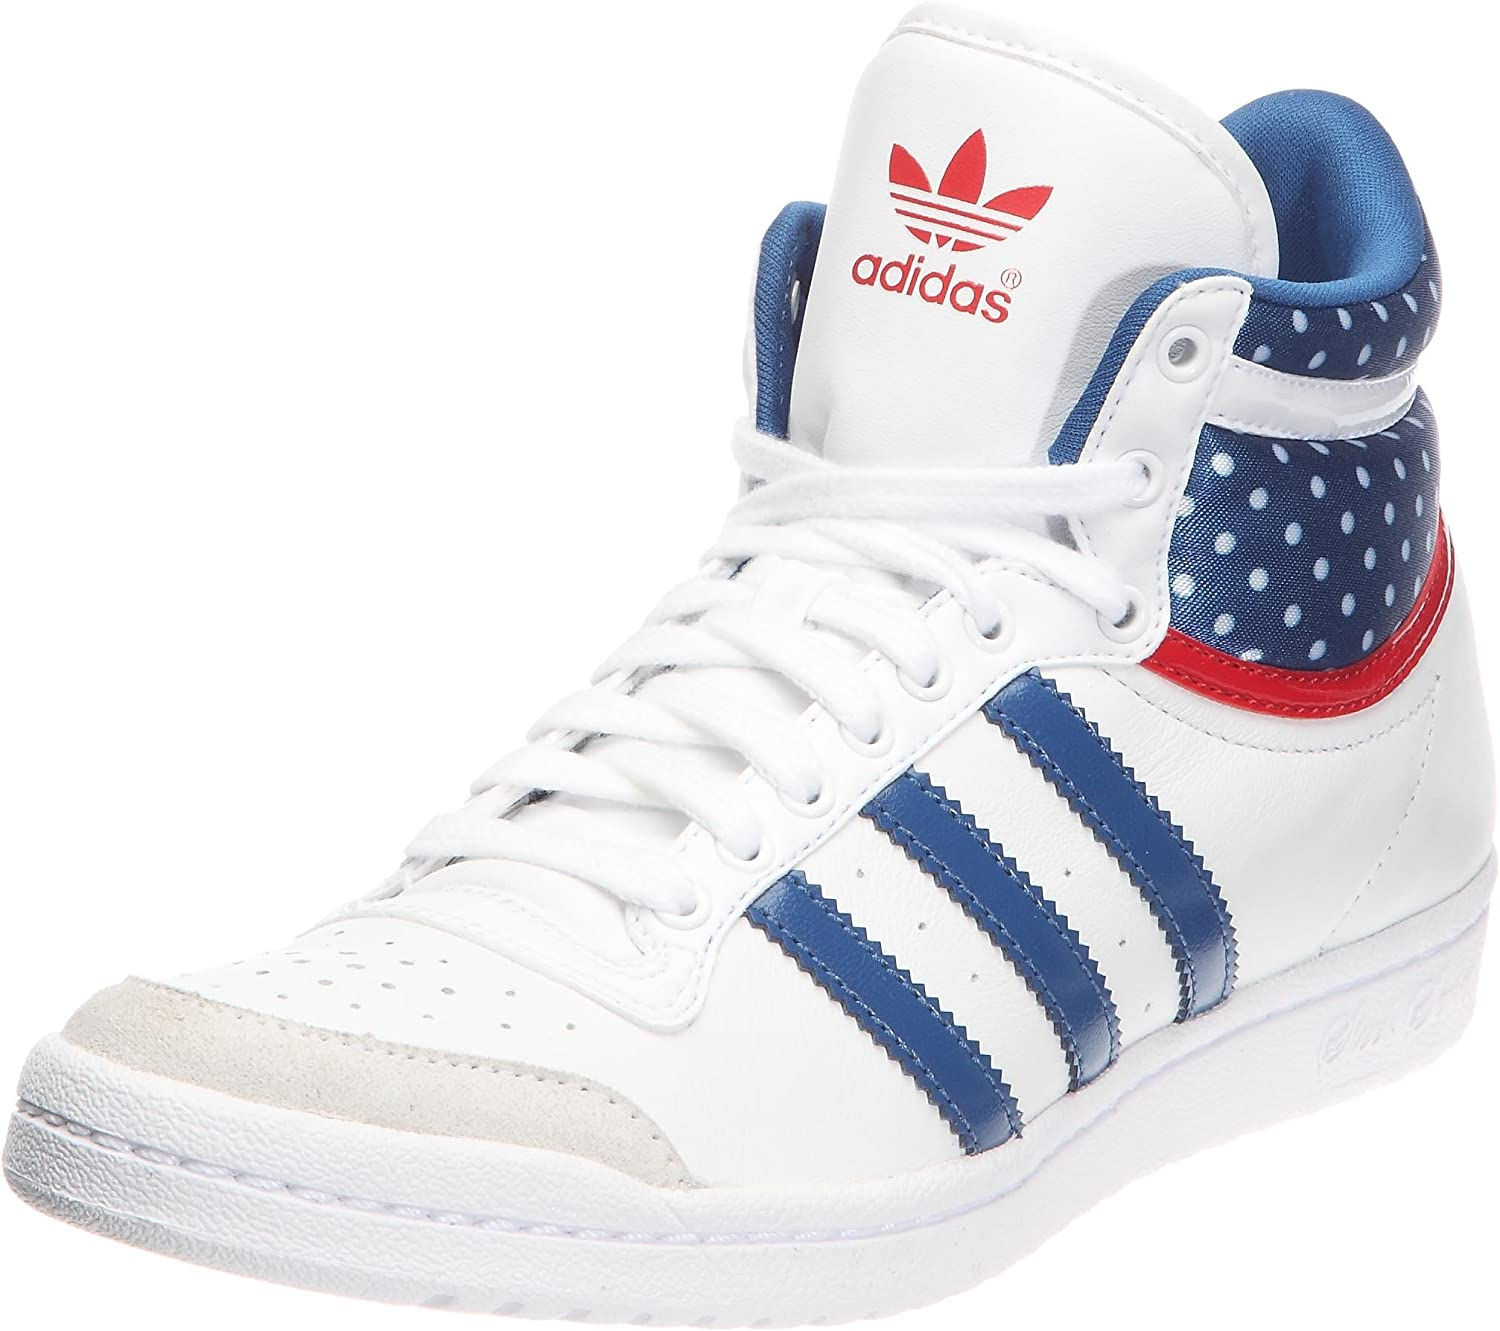 adidas Originals Top Ten Hi Slee, Chaussures lifestyle baskets mode femme